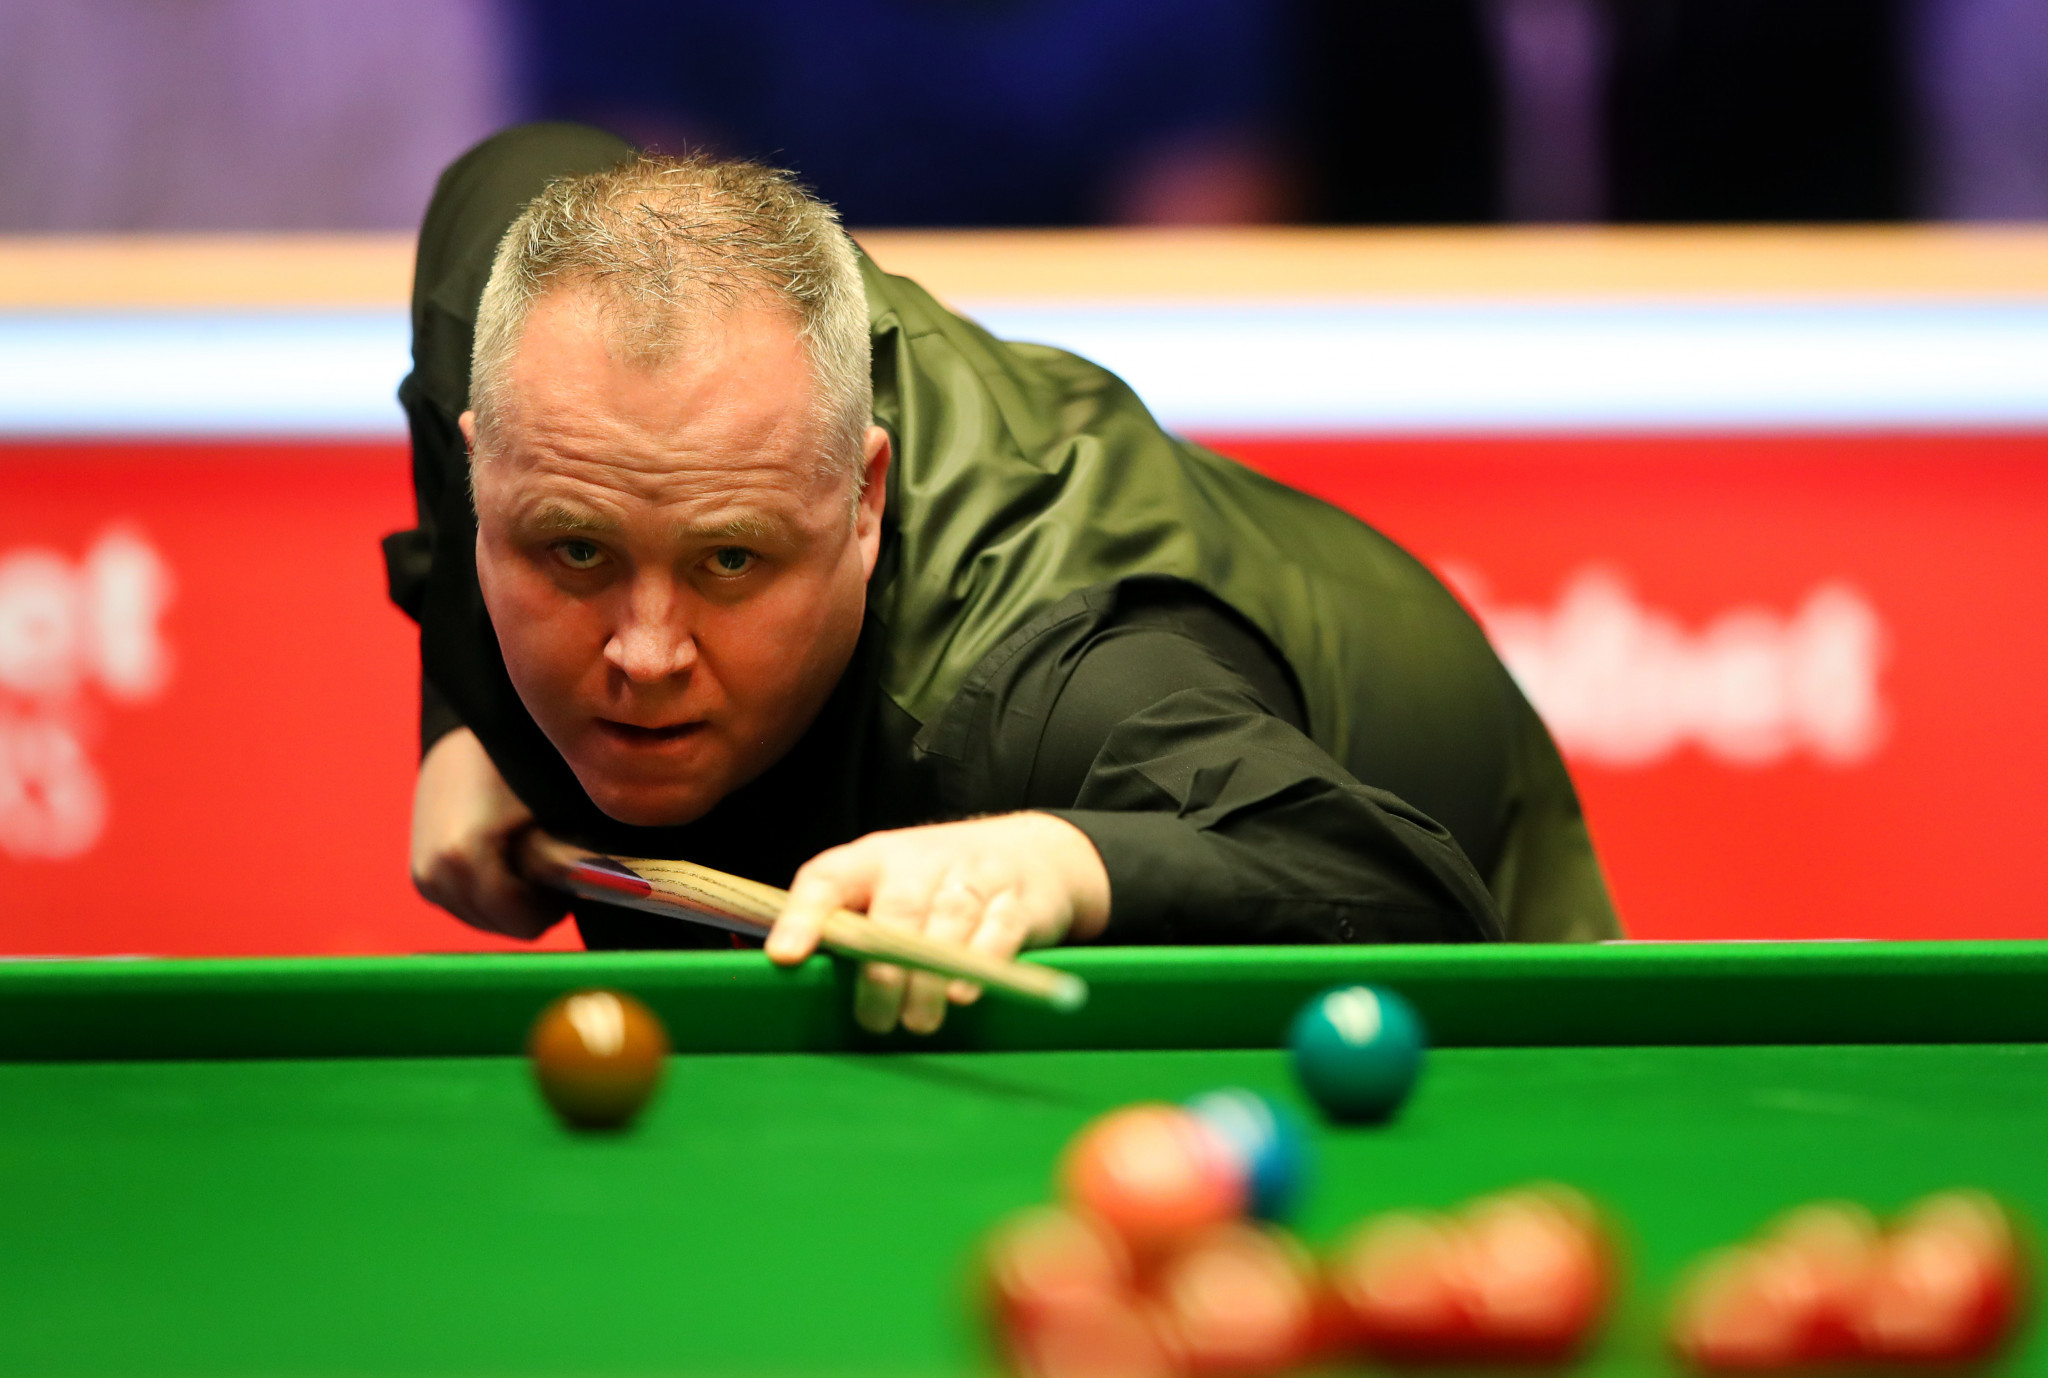 John Higgins is out of the World Snooker Championship ©Getty Images